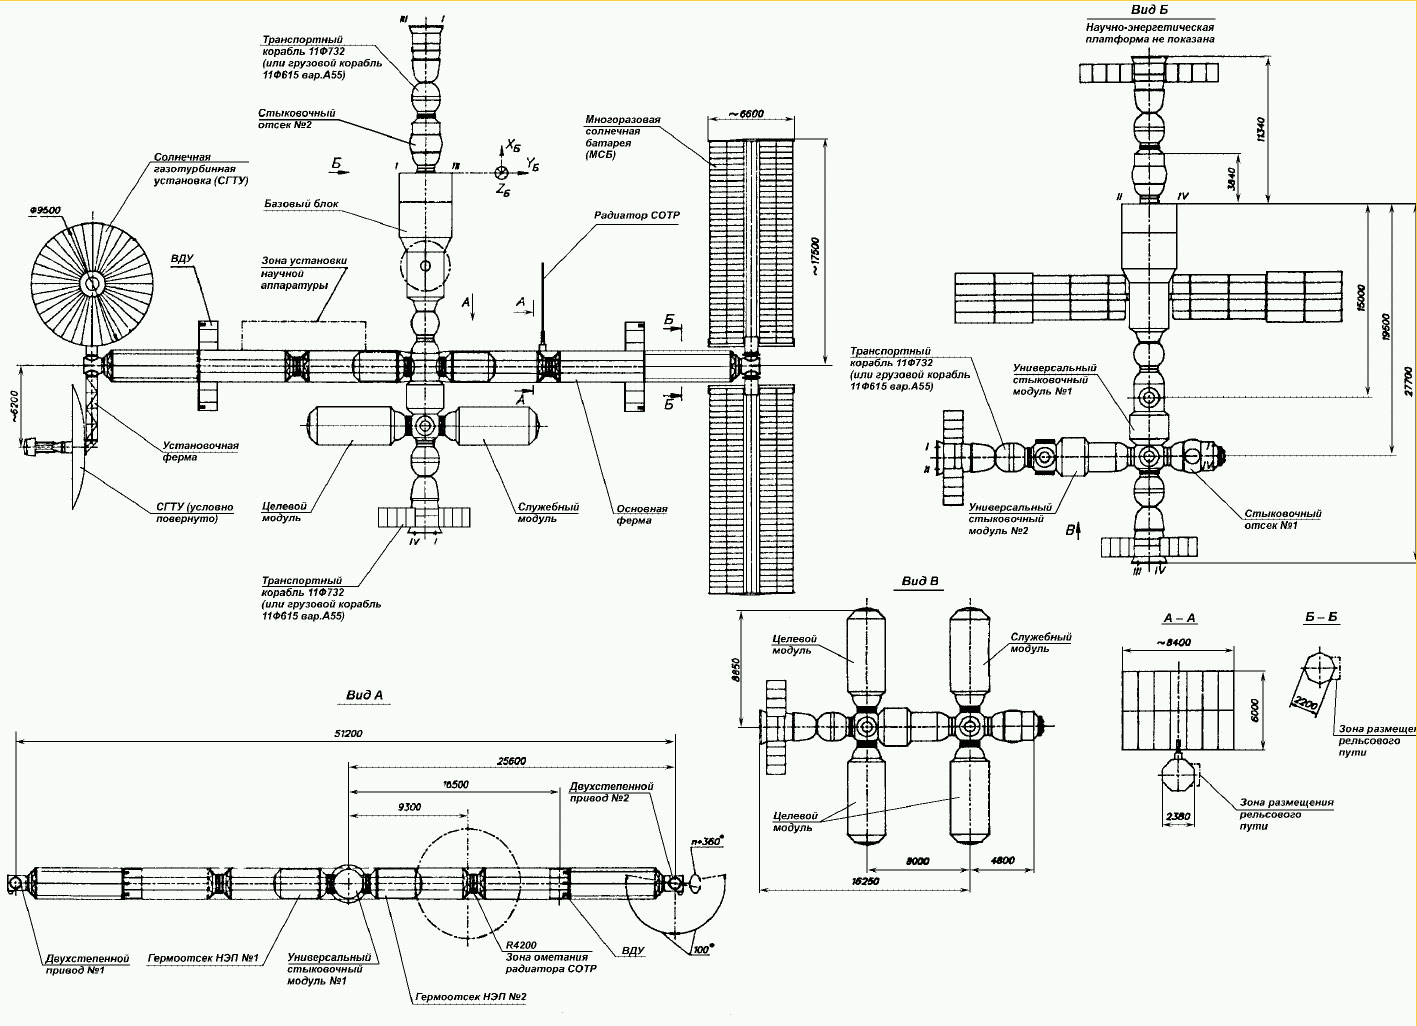 dramatically revised 1993 iteration of mir-2